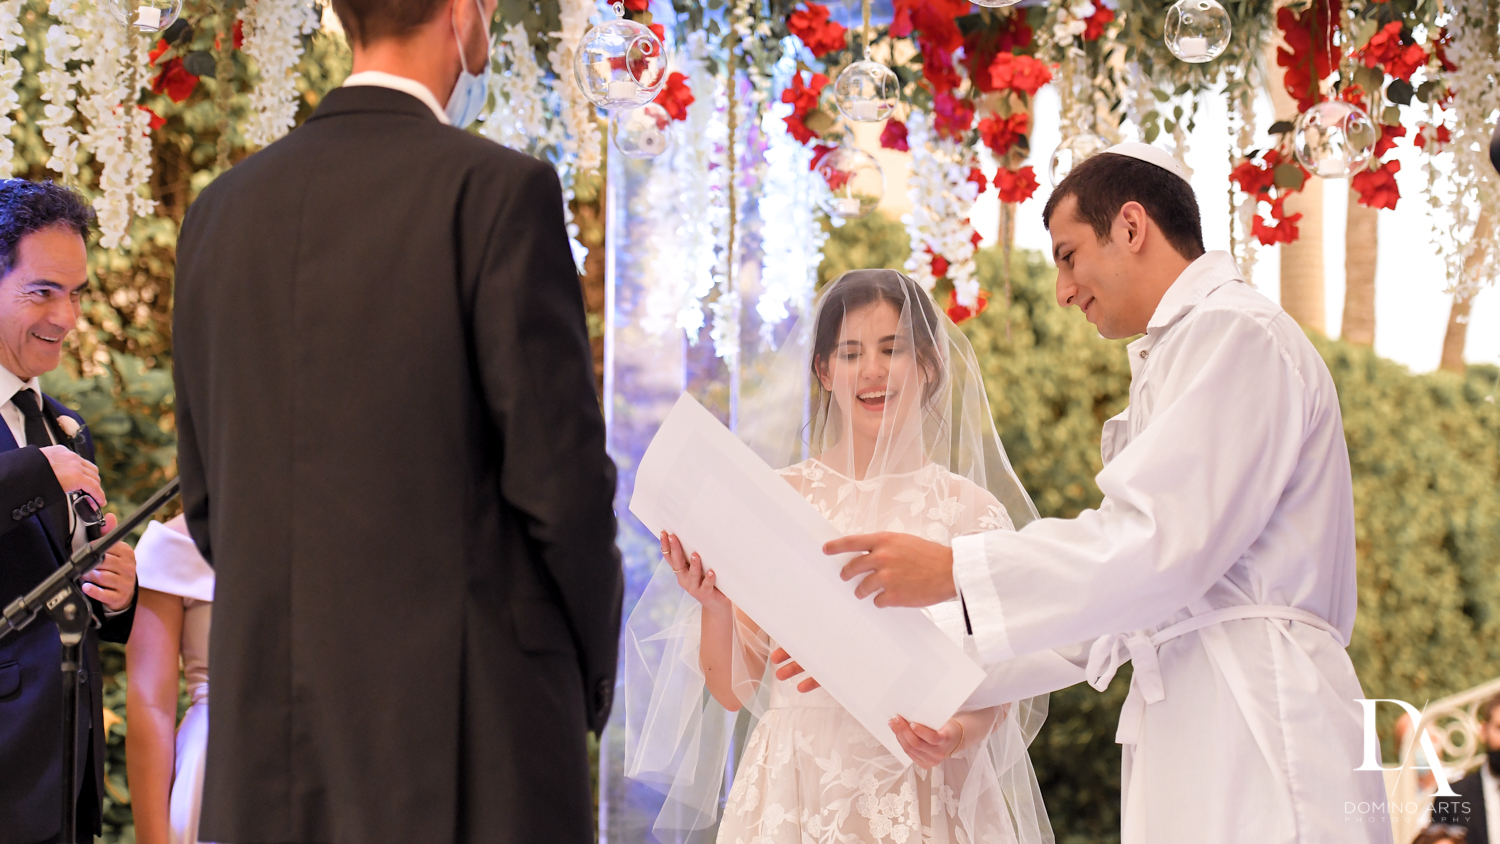 jewish ketubah at Luxury Summer Wedding at The Colony Hotel Palm Beach by Domino Arts Photography